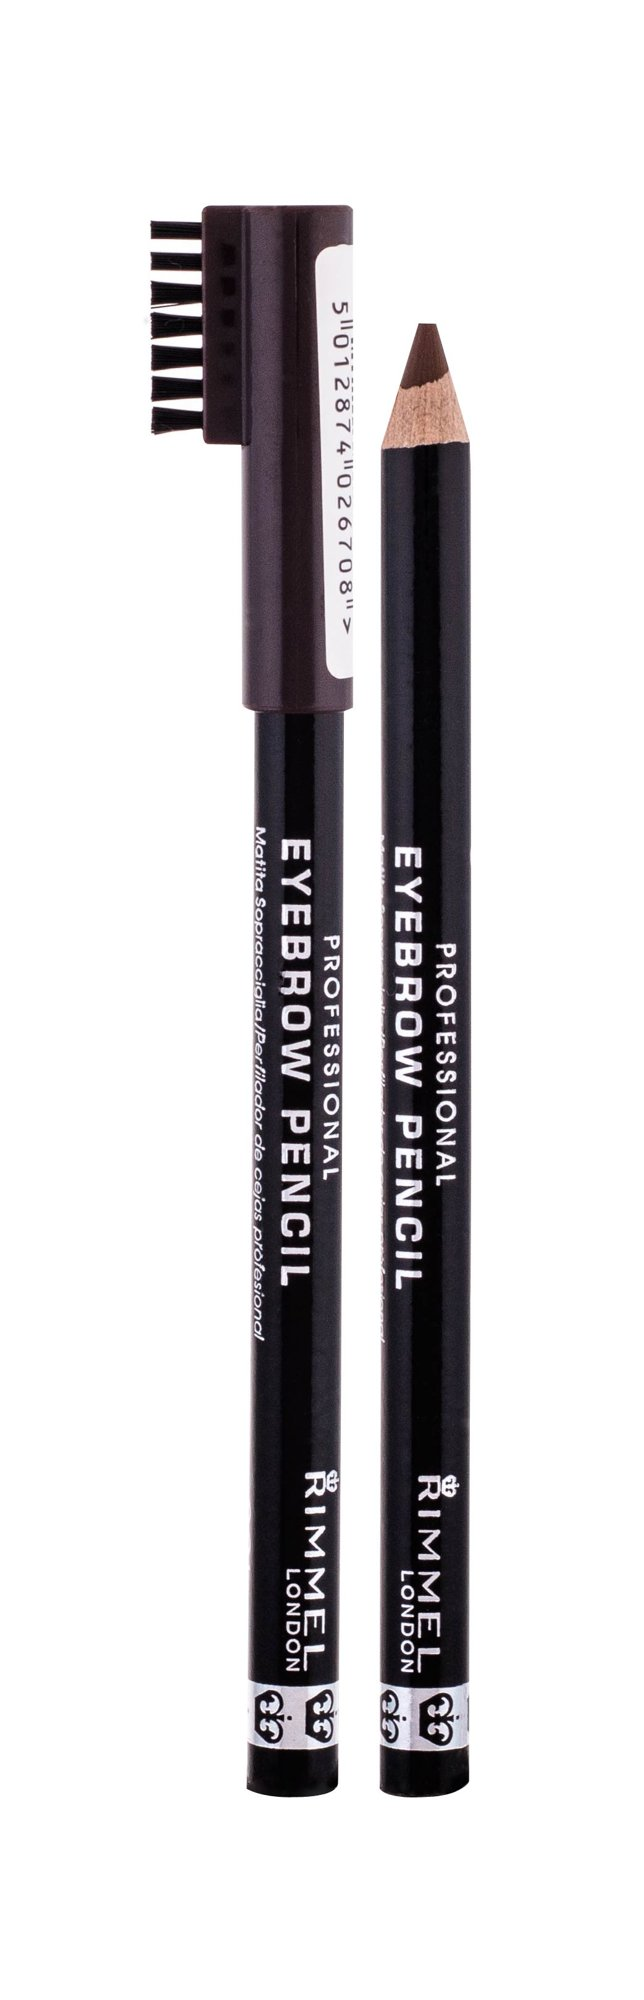 Rimmel London Professional Eyebrow Pencil  (Tužka na obočí, W, 1,4 g)